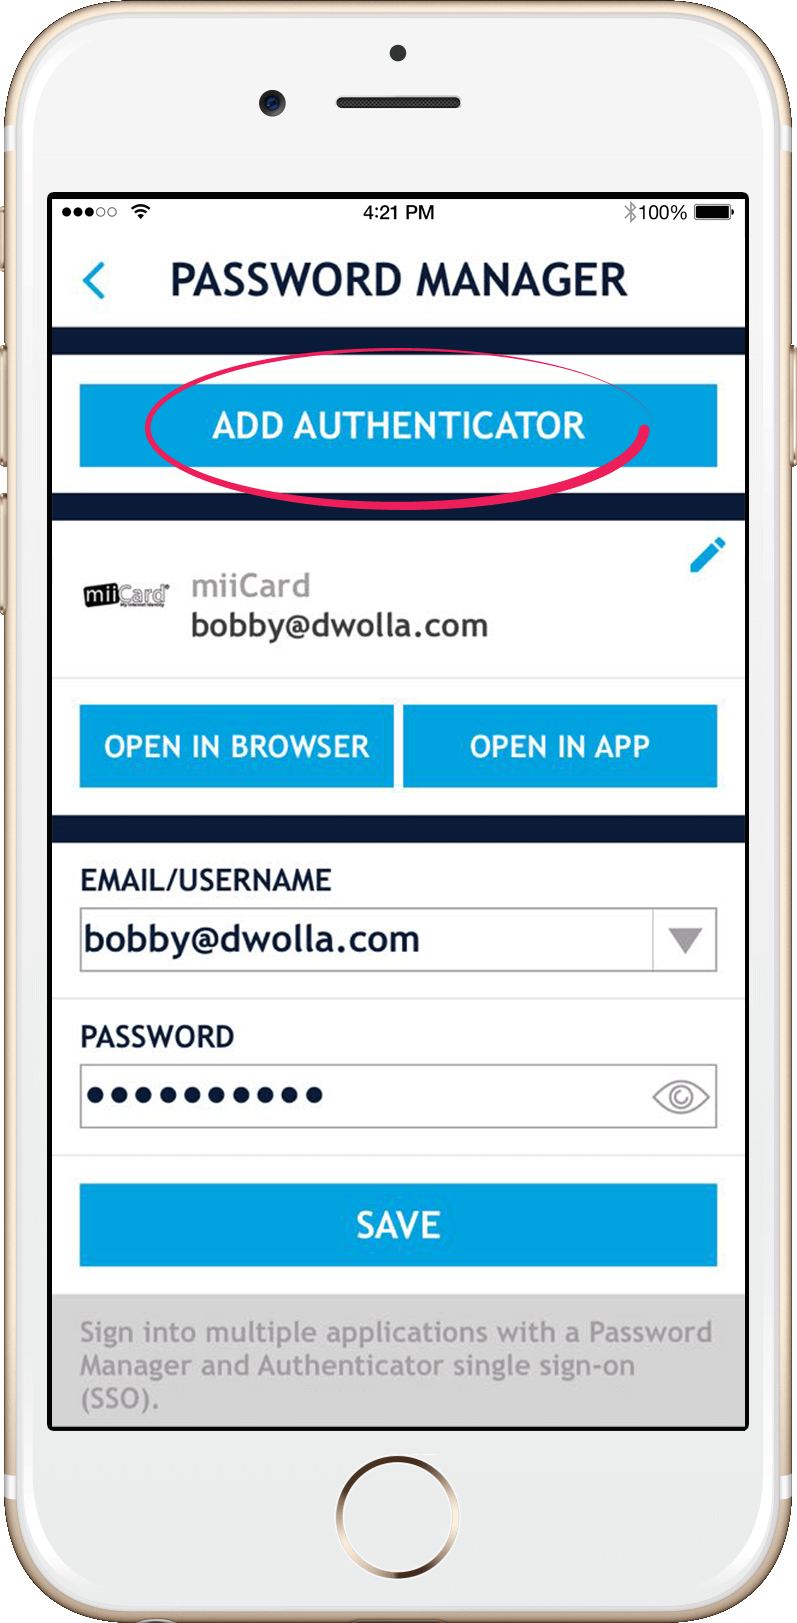 Adding asuthenticator a 2g you can add the authenticator security to your password manager on sites that support it m4hsunfo Choice Image